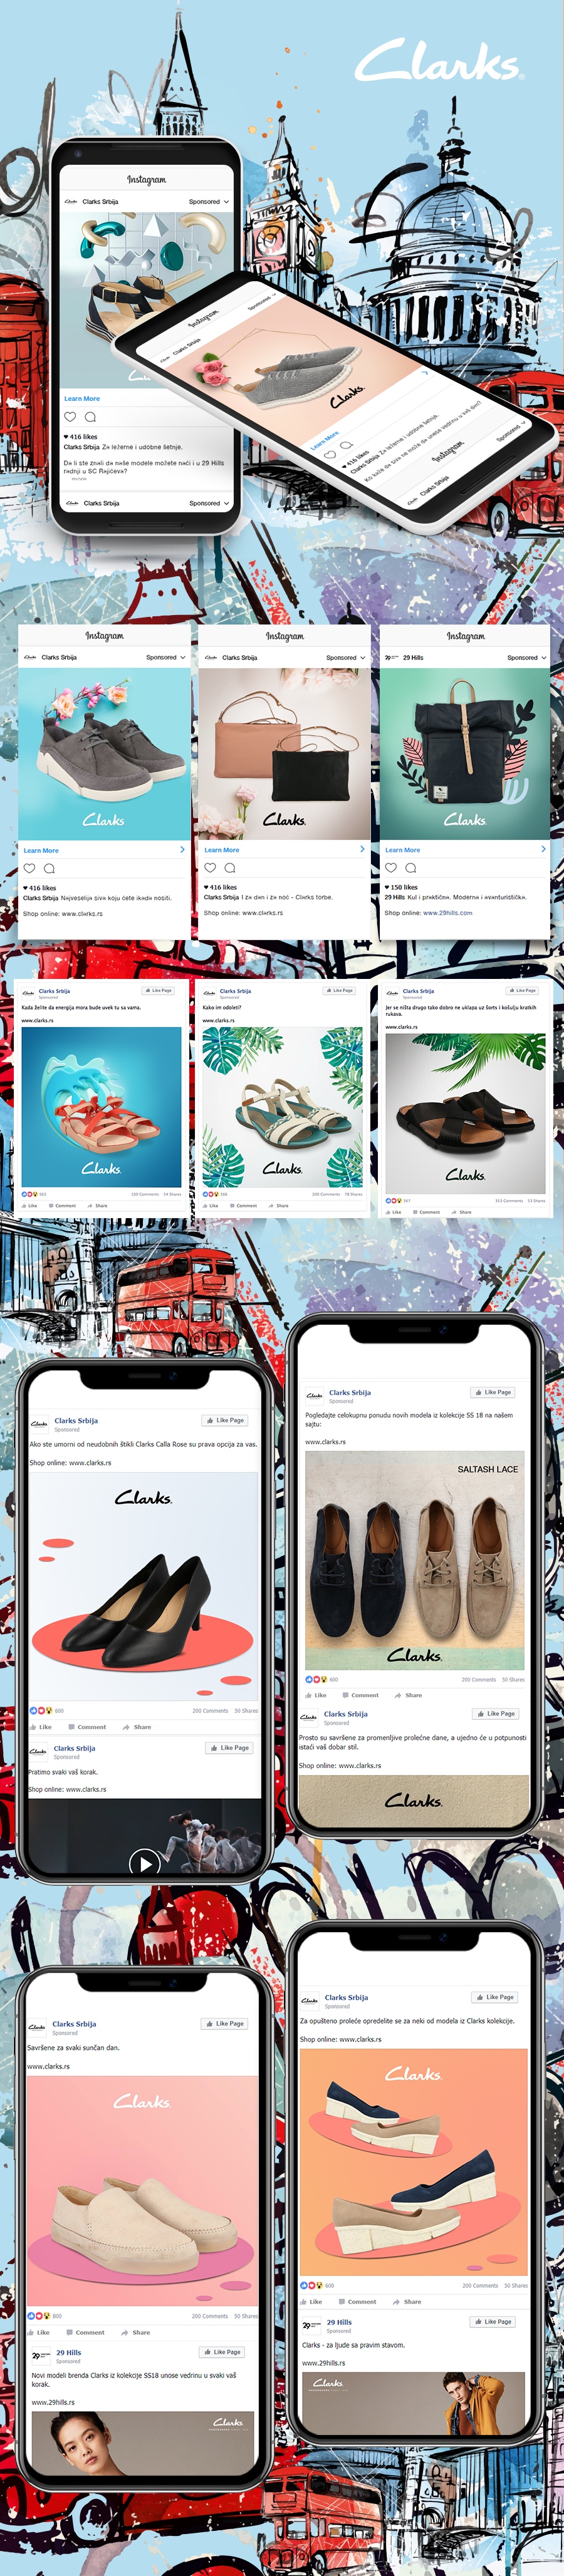 Clarks--fb-mock-up-FINAL-LONDON-2